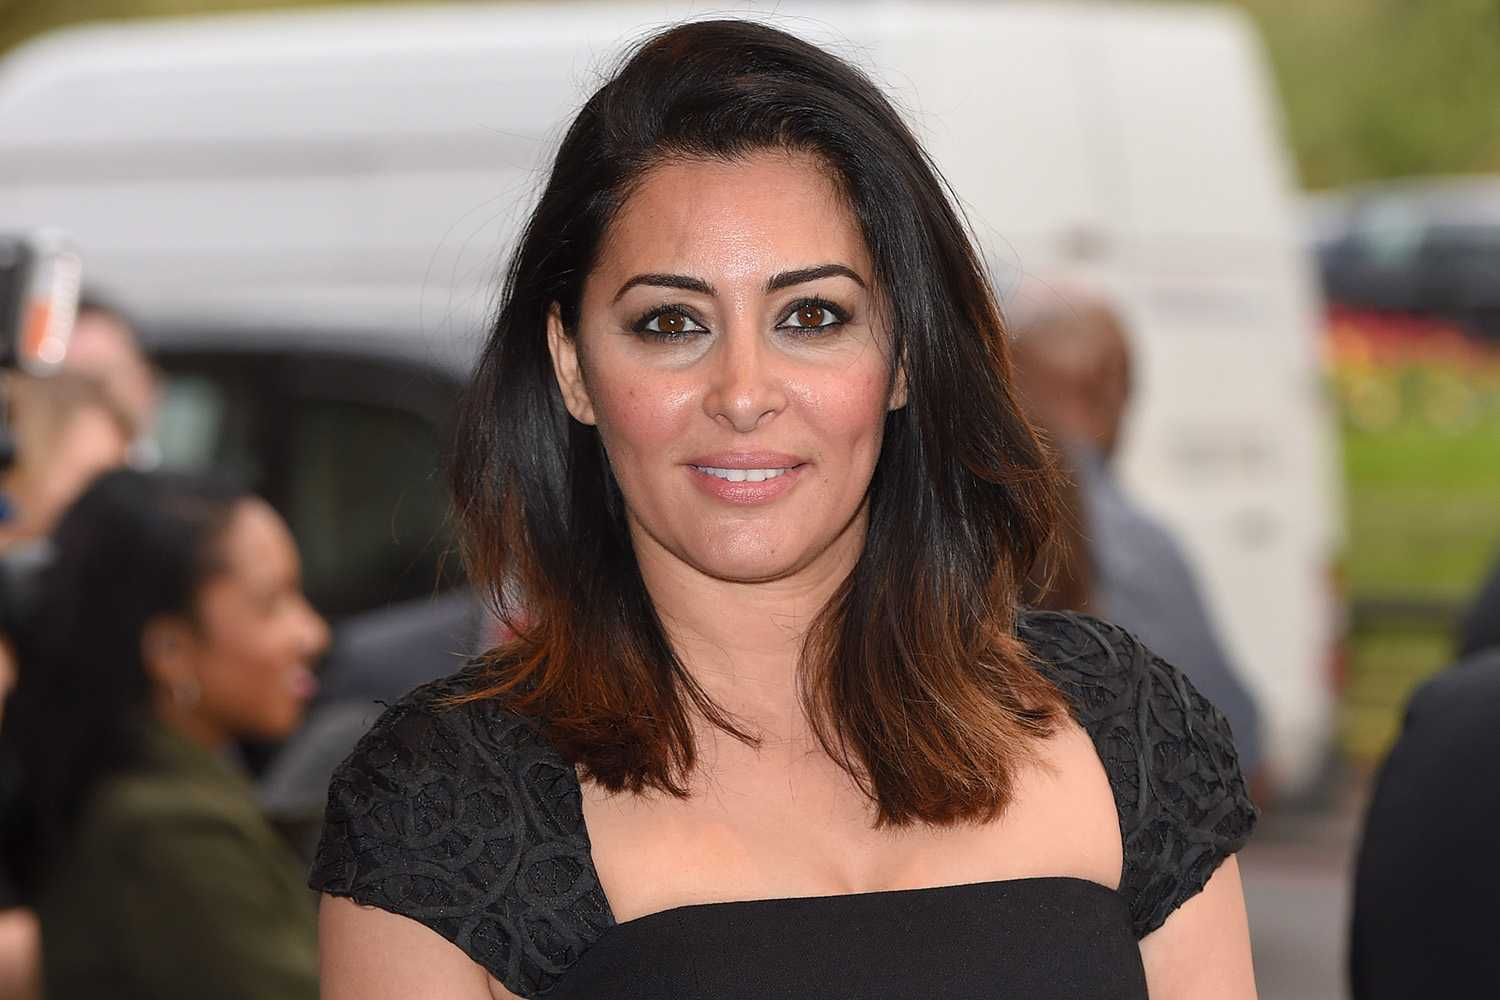 Barcelona Terror Holby City Actress Laila Rouass Caught Up In The Atrocity